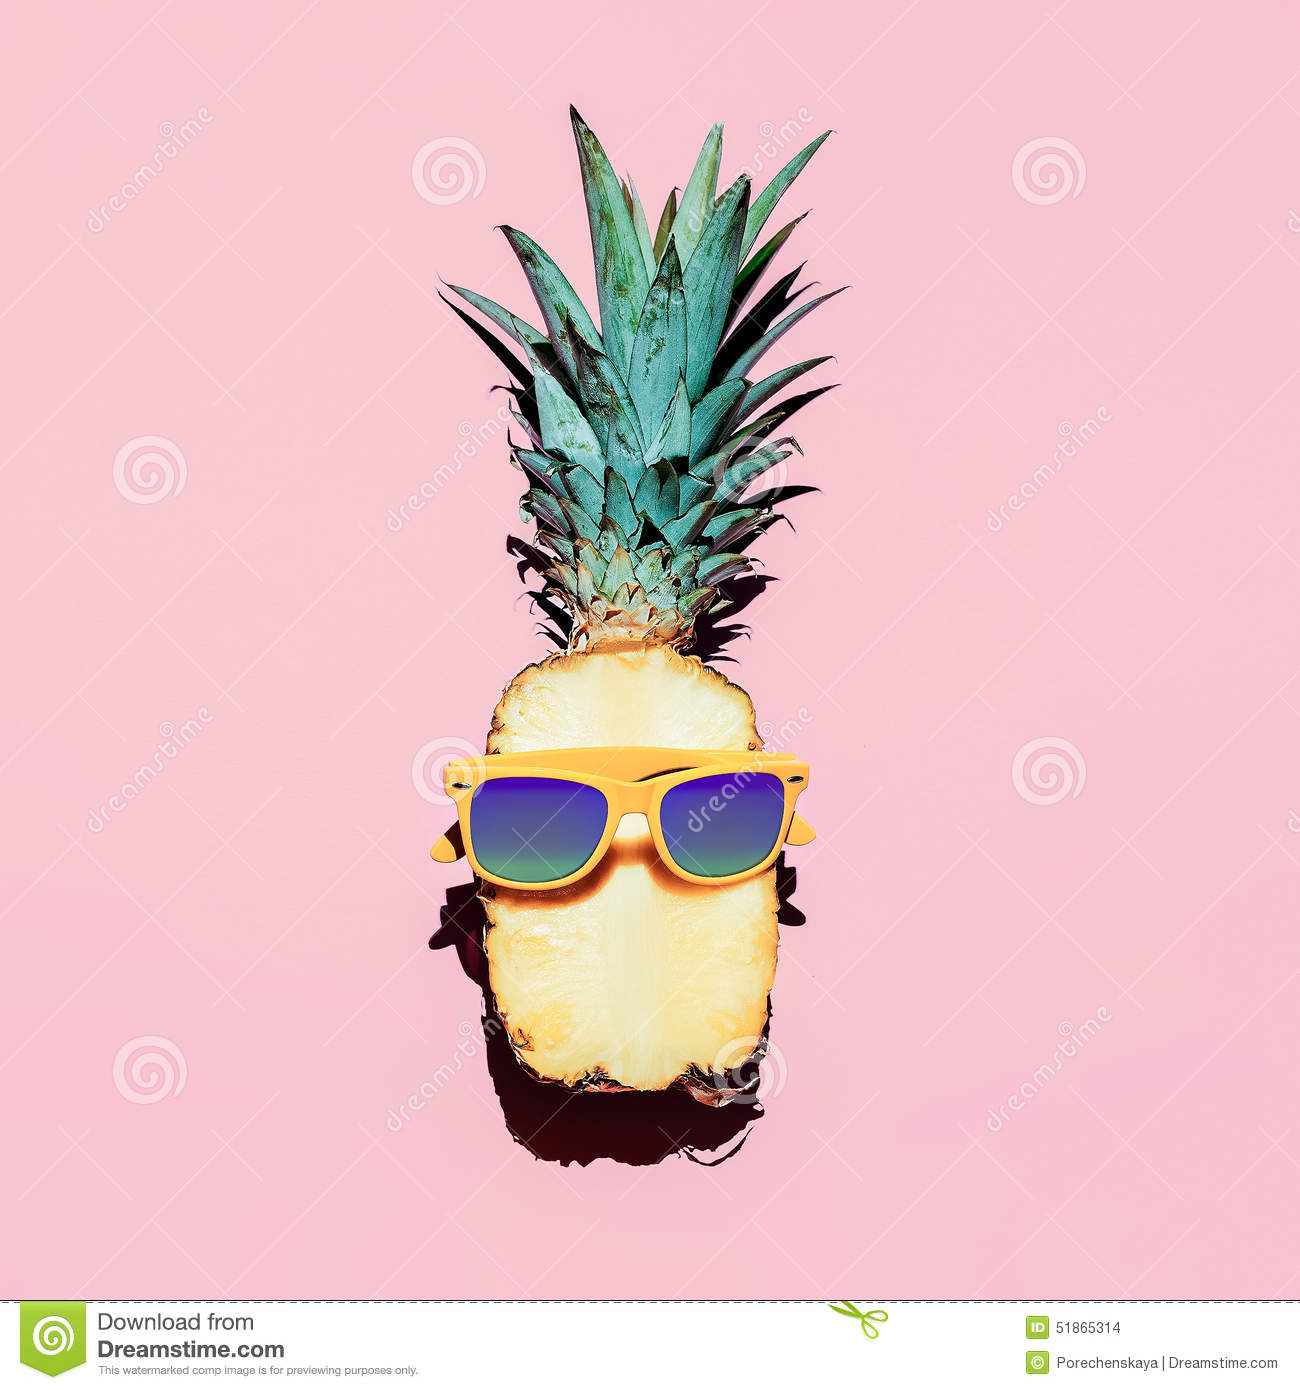 Pineapple With Sunglasses Tumblr Hipster Pineapple Fashion Accessories And Fruits Stock